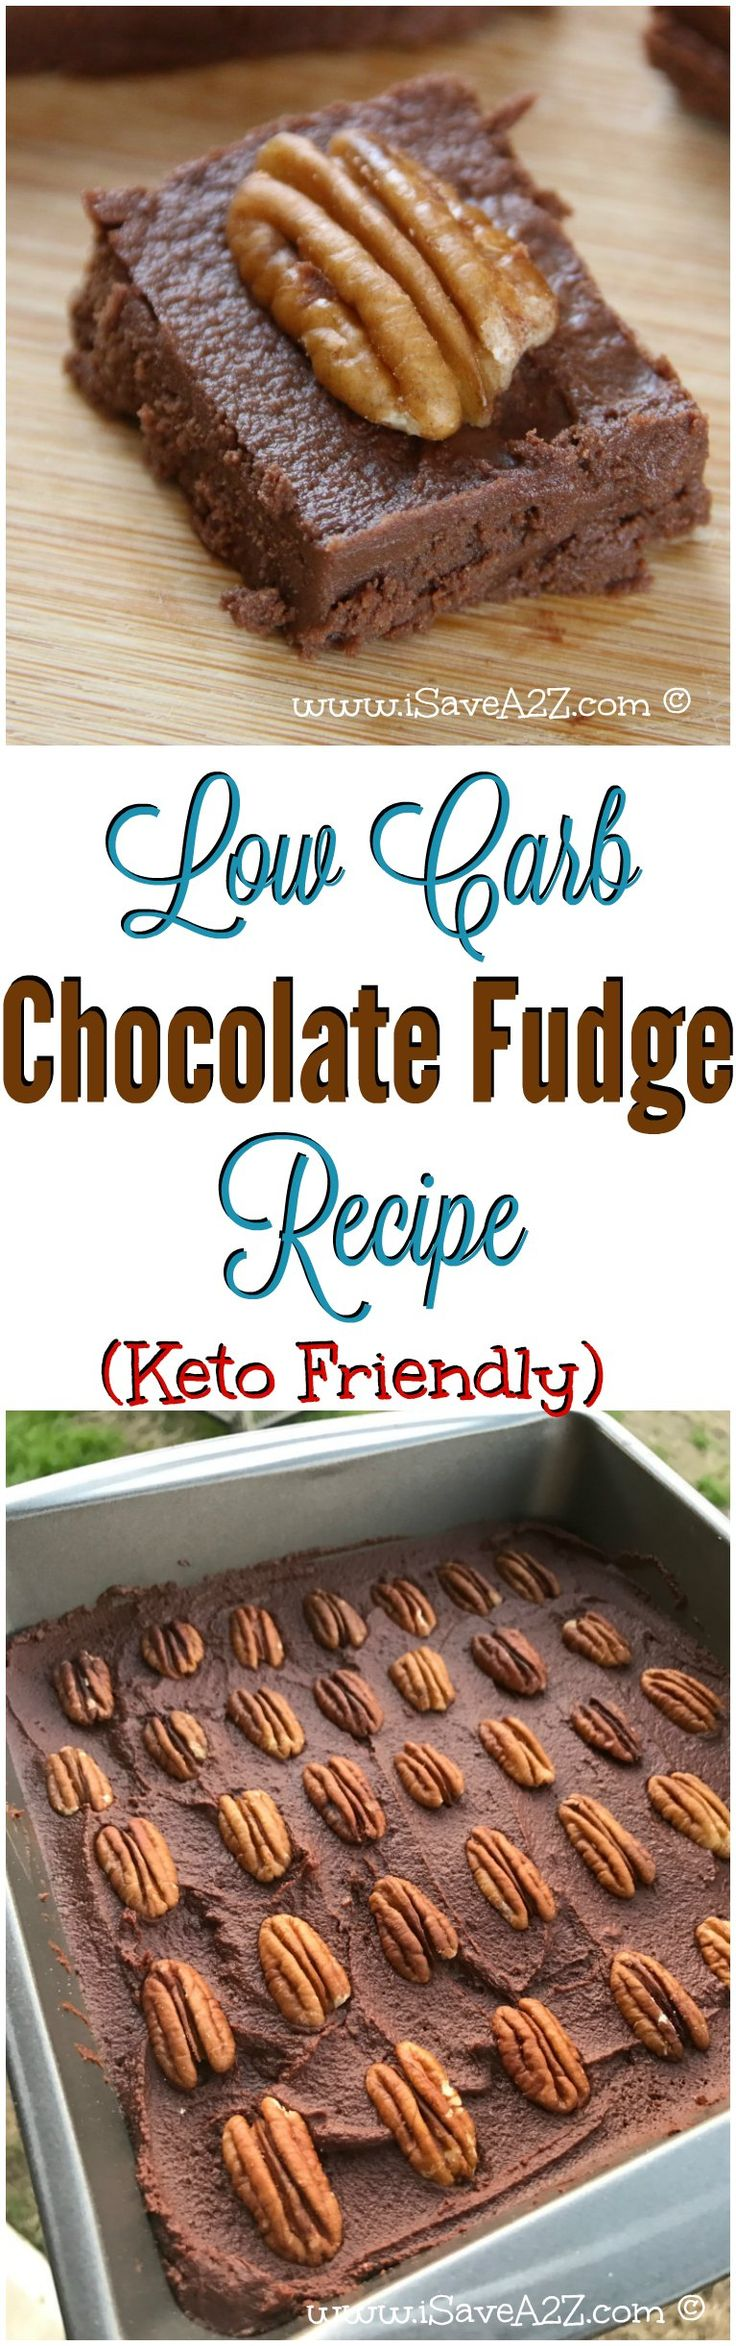 This keto friendly chocolate fudge MELTS IN YOUR MOUTH! via @isavea2z